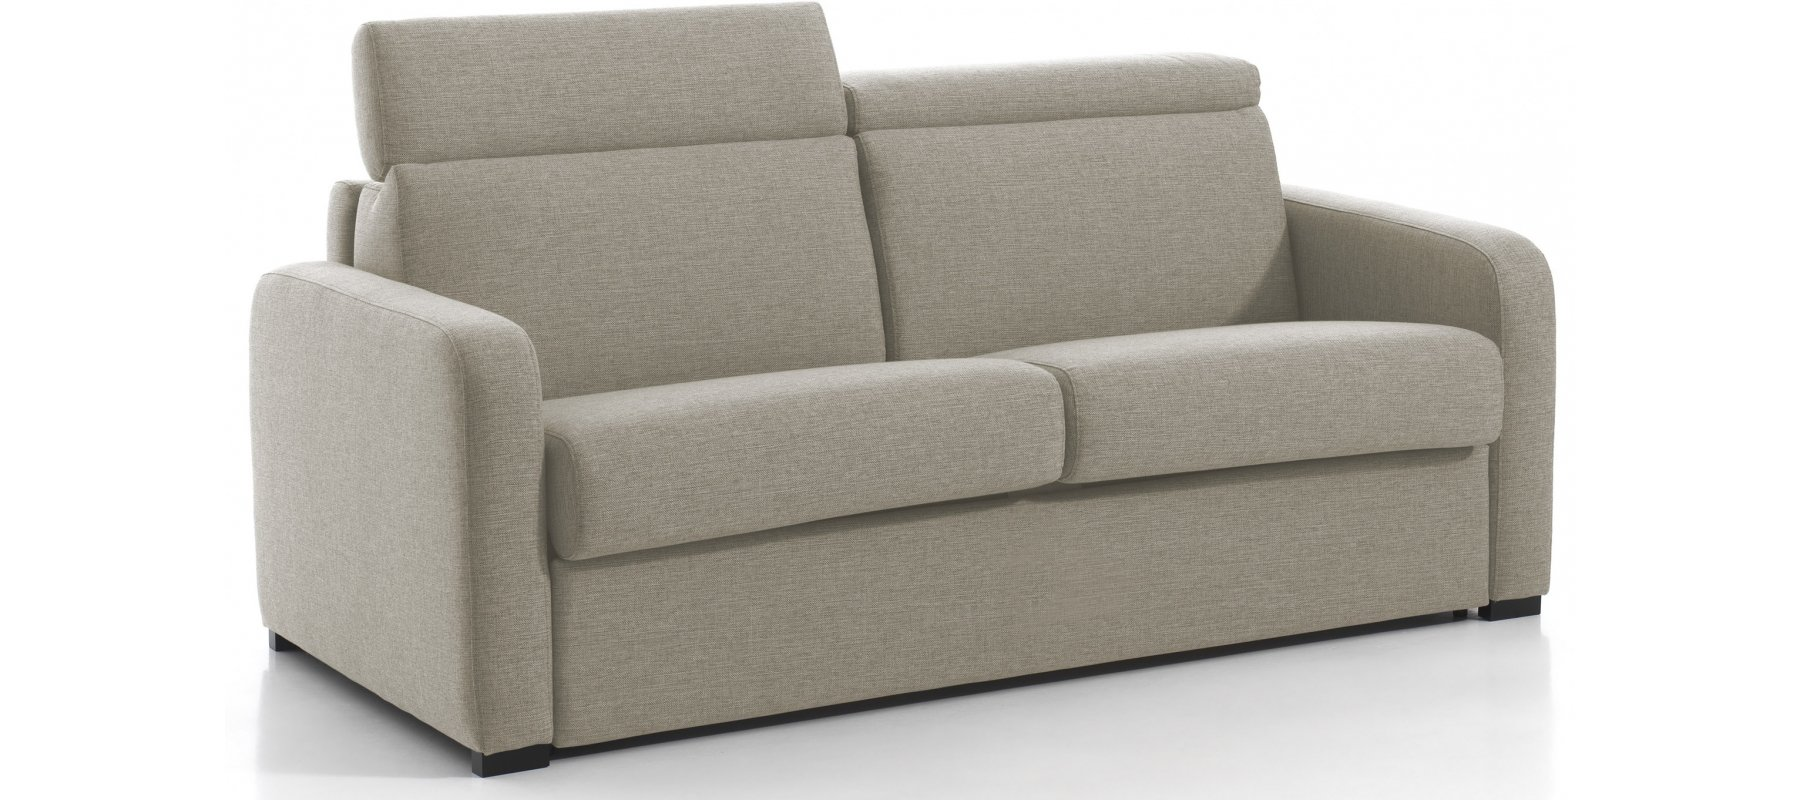 canap convertible 3 places forli rapido couchage. Black Bedroom Furniture Sets. Home Design Ideas